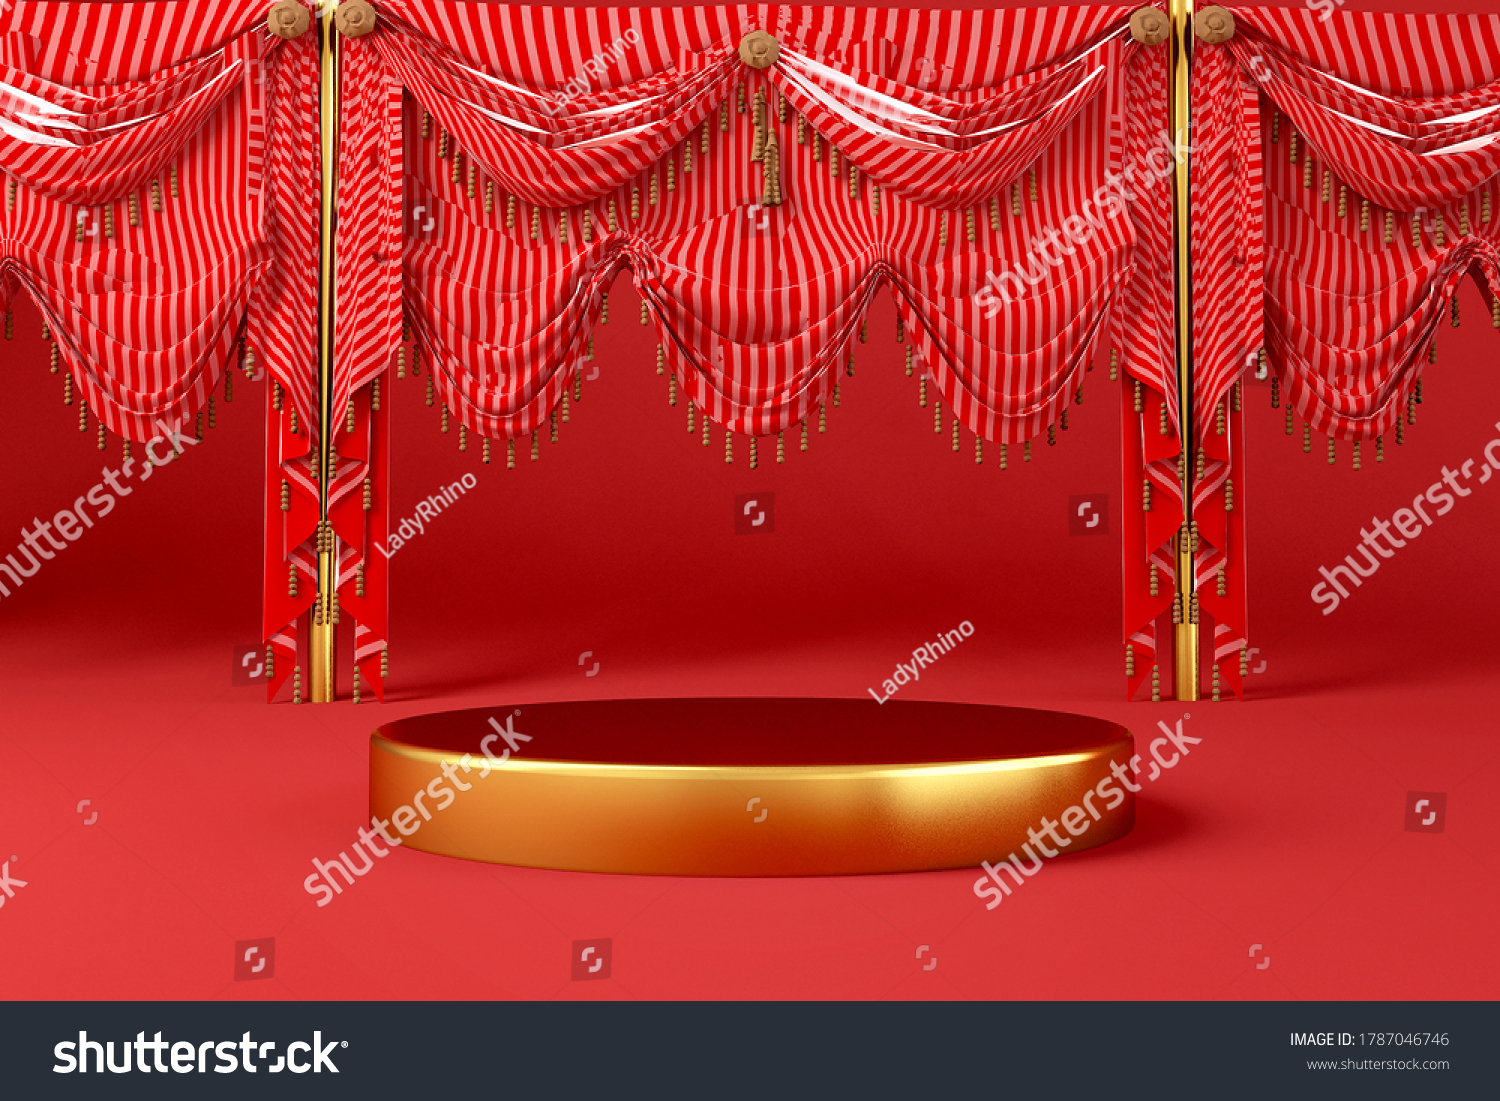 stock-photo-gold-stage-podium-or-product